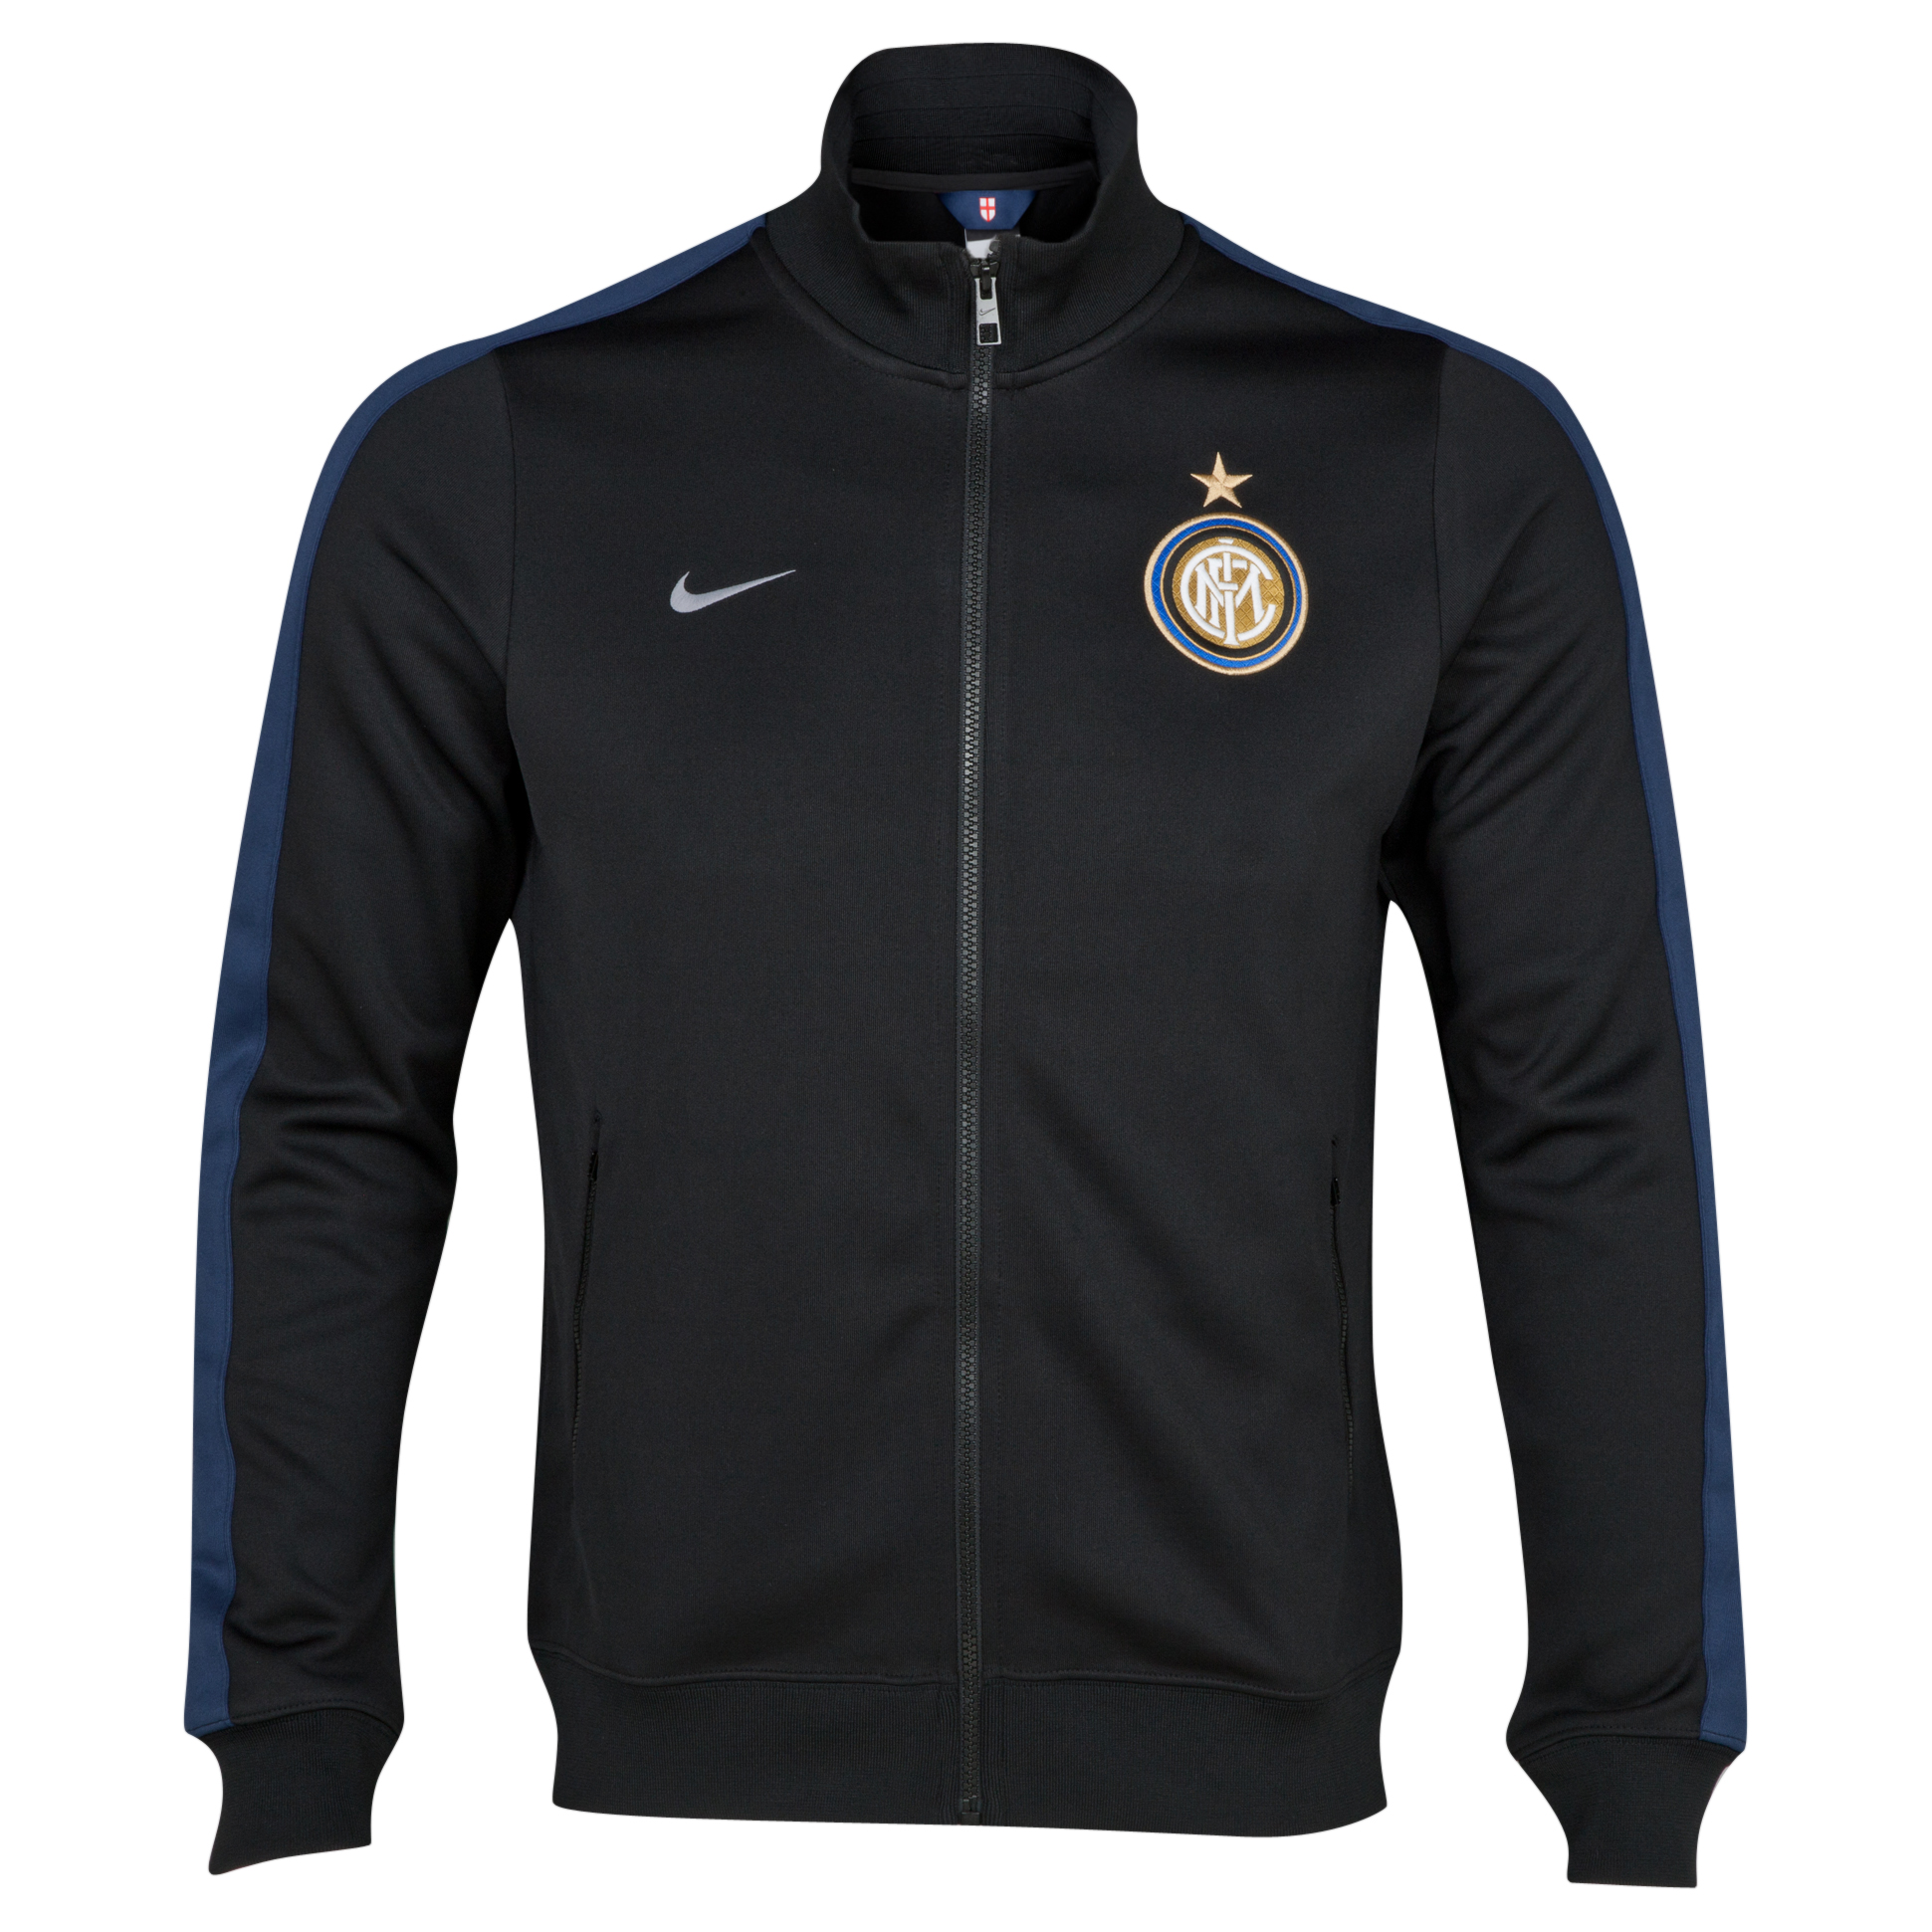 Inter Milan Authentic N98 Jacket - Black/Midnight Navy/White